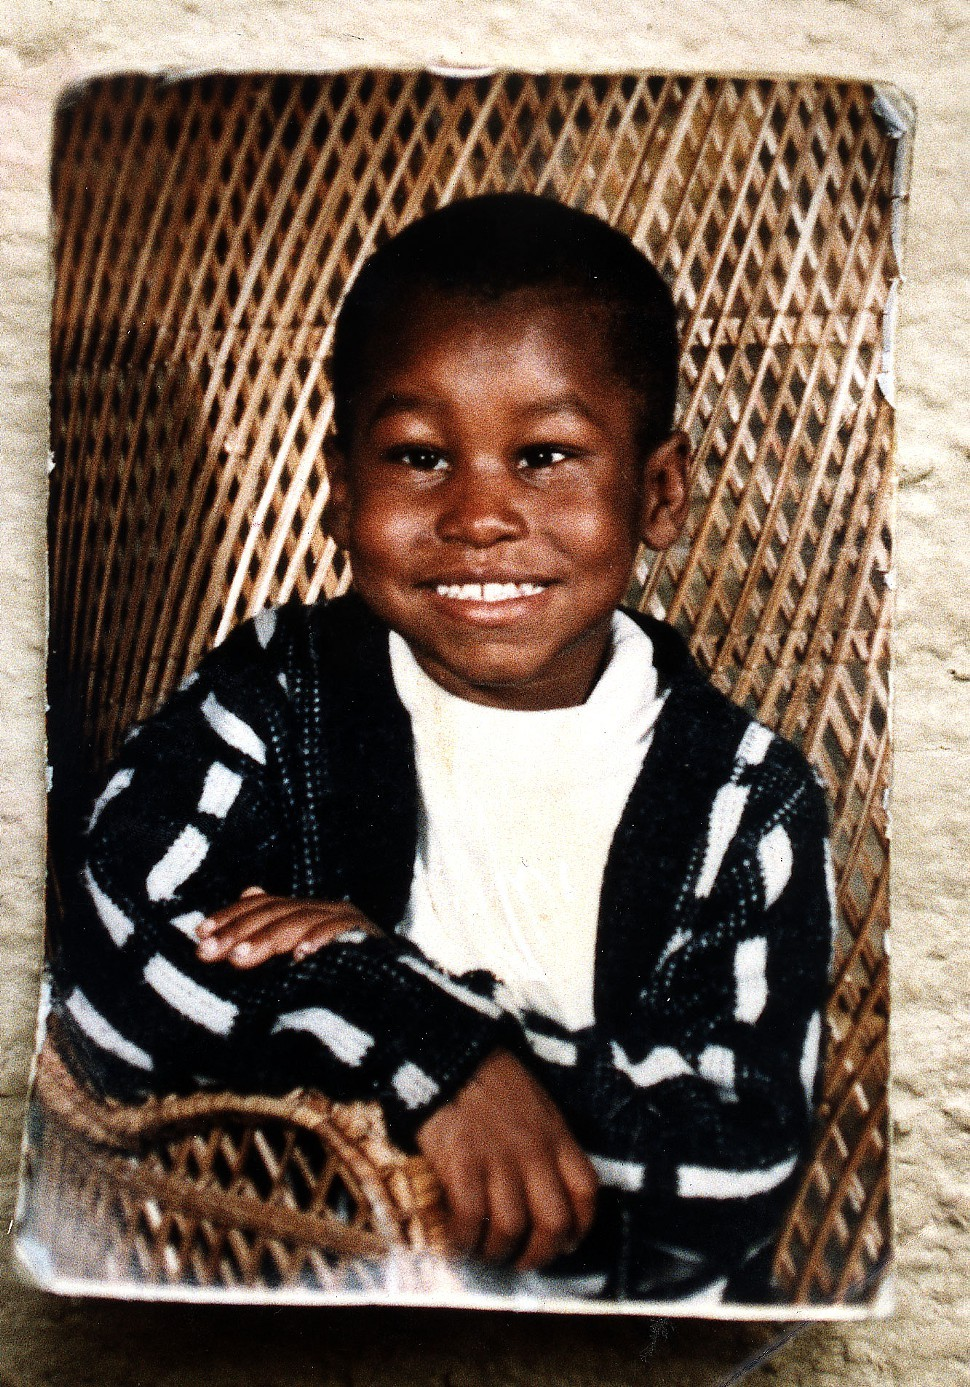 Dantrell Davis, killed by a sniper on his way to school in 1992 at the age of 7